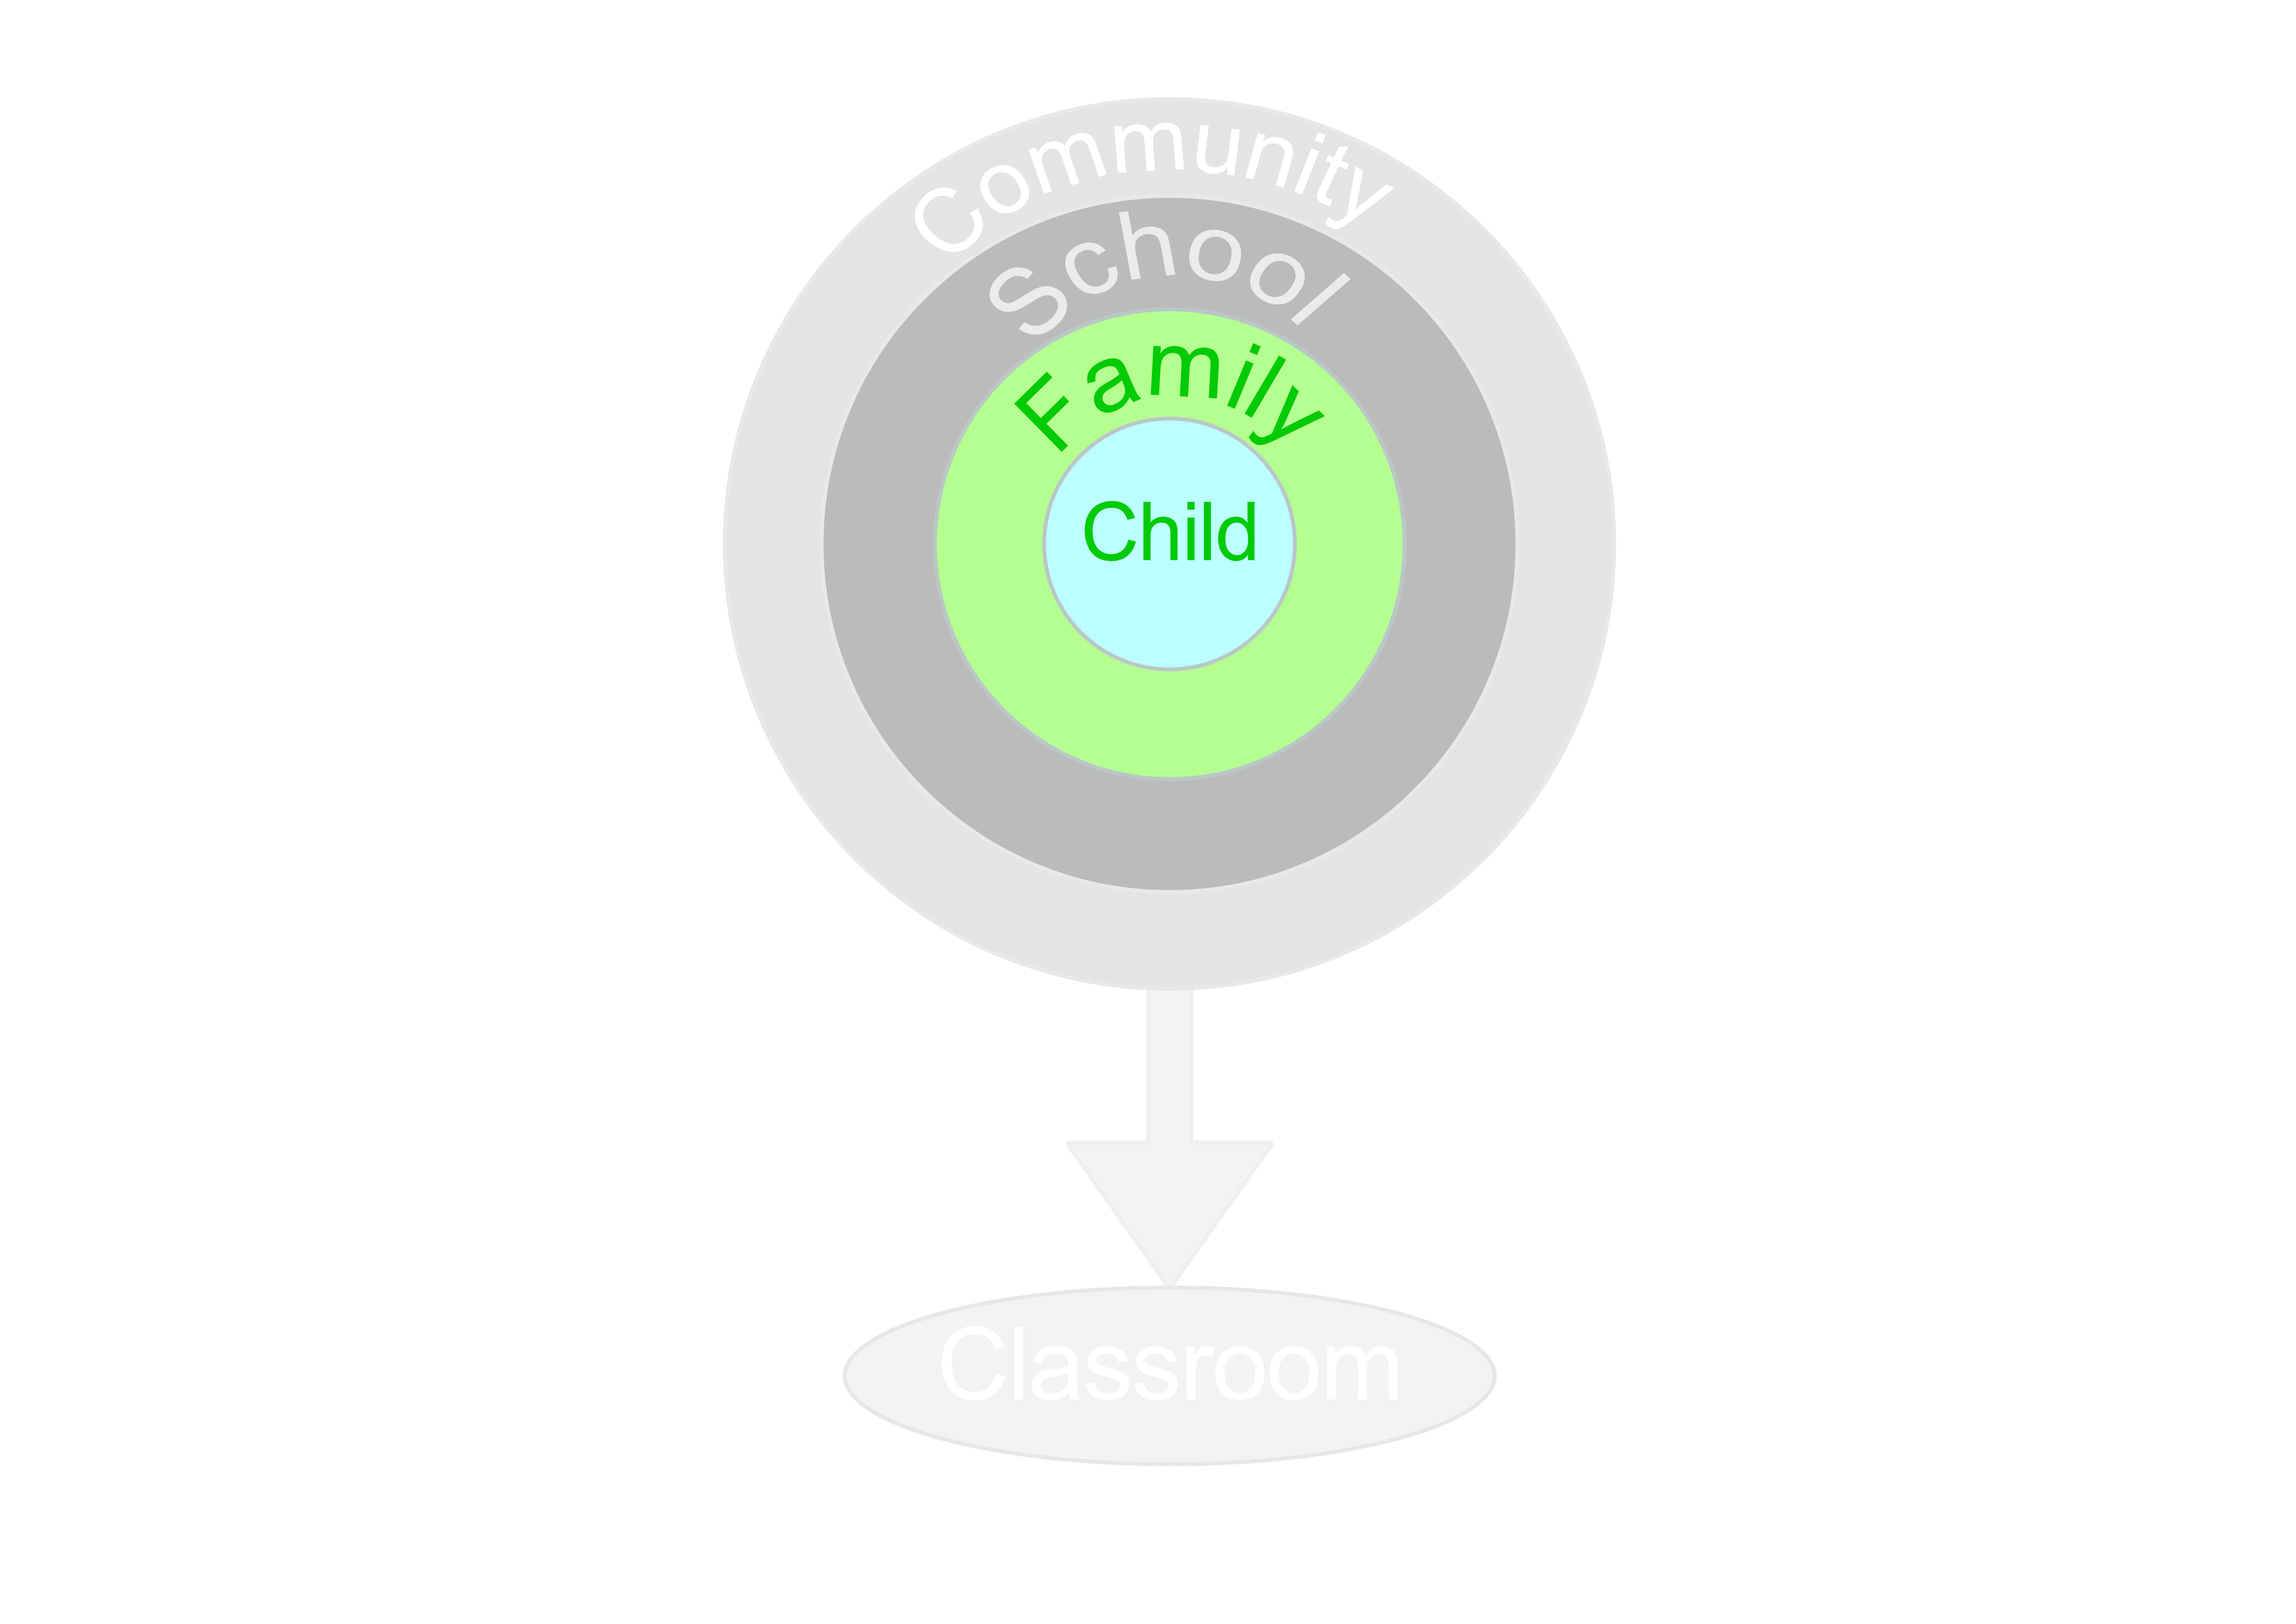 Image of course layout with focus on the word family